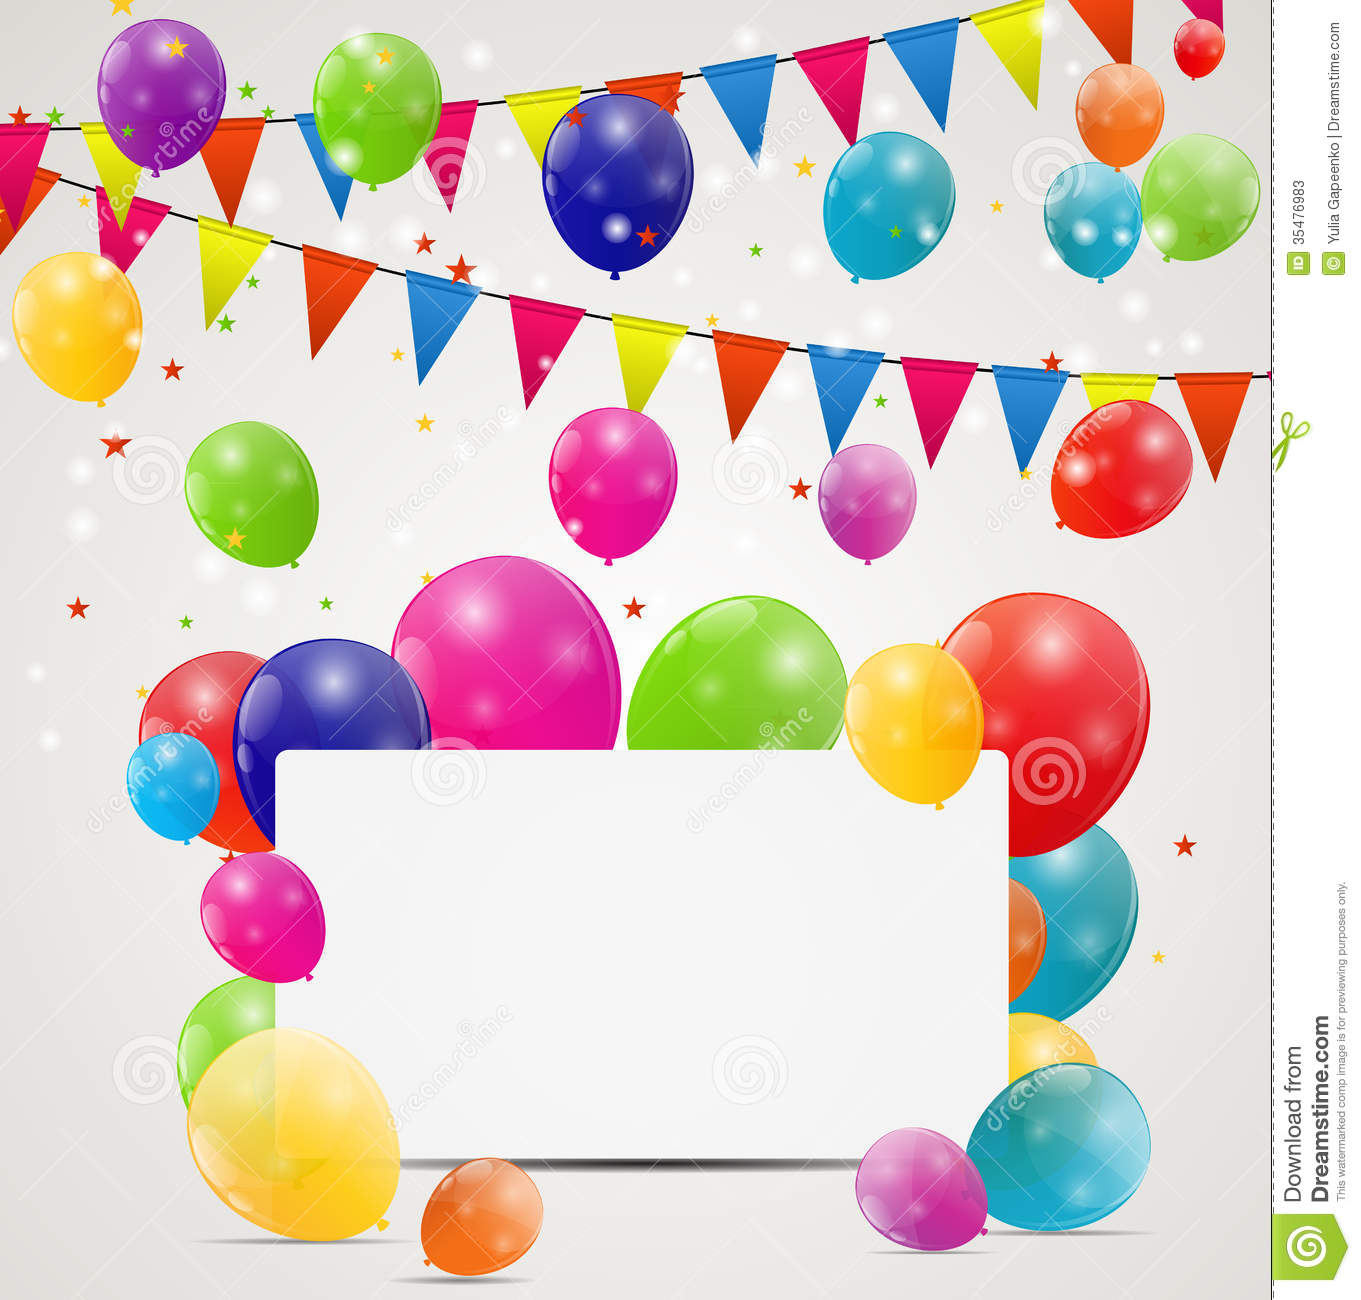 10 Yr Old Boy Birthday Party Ideas